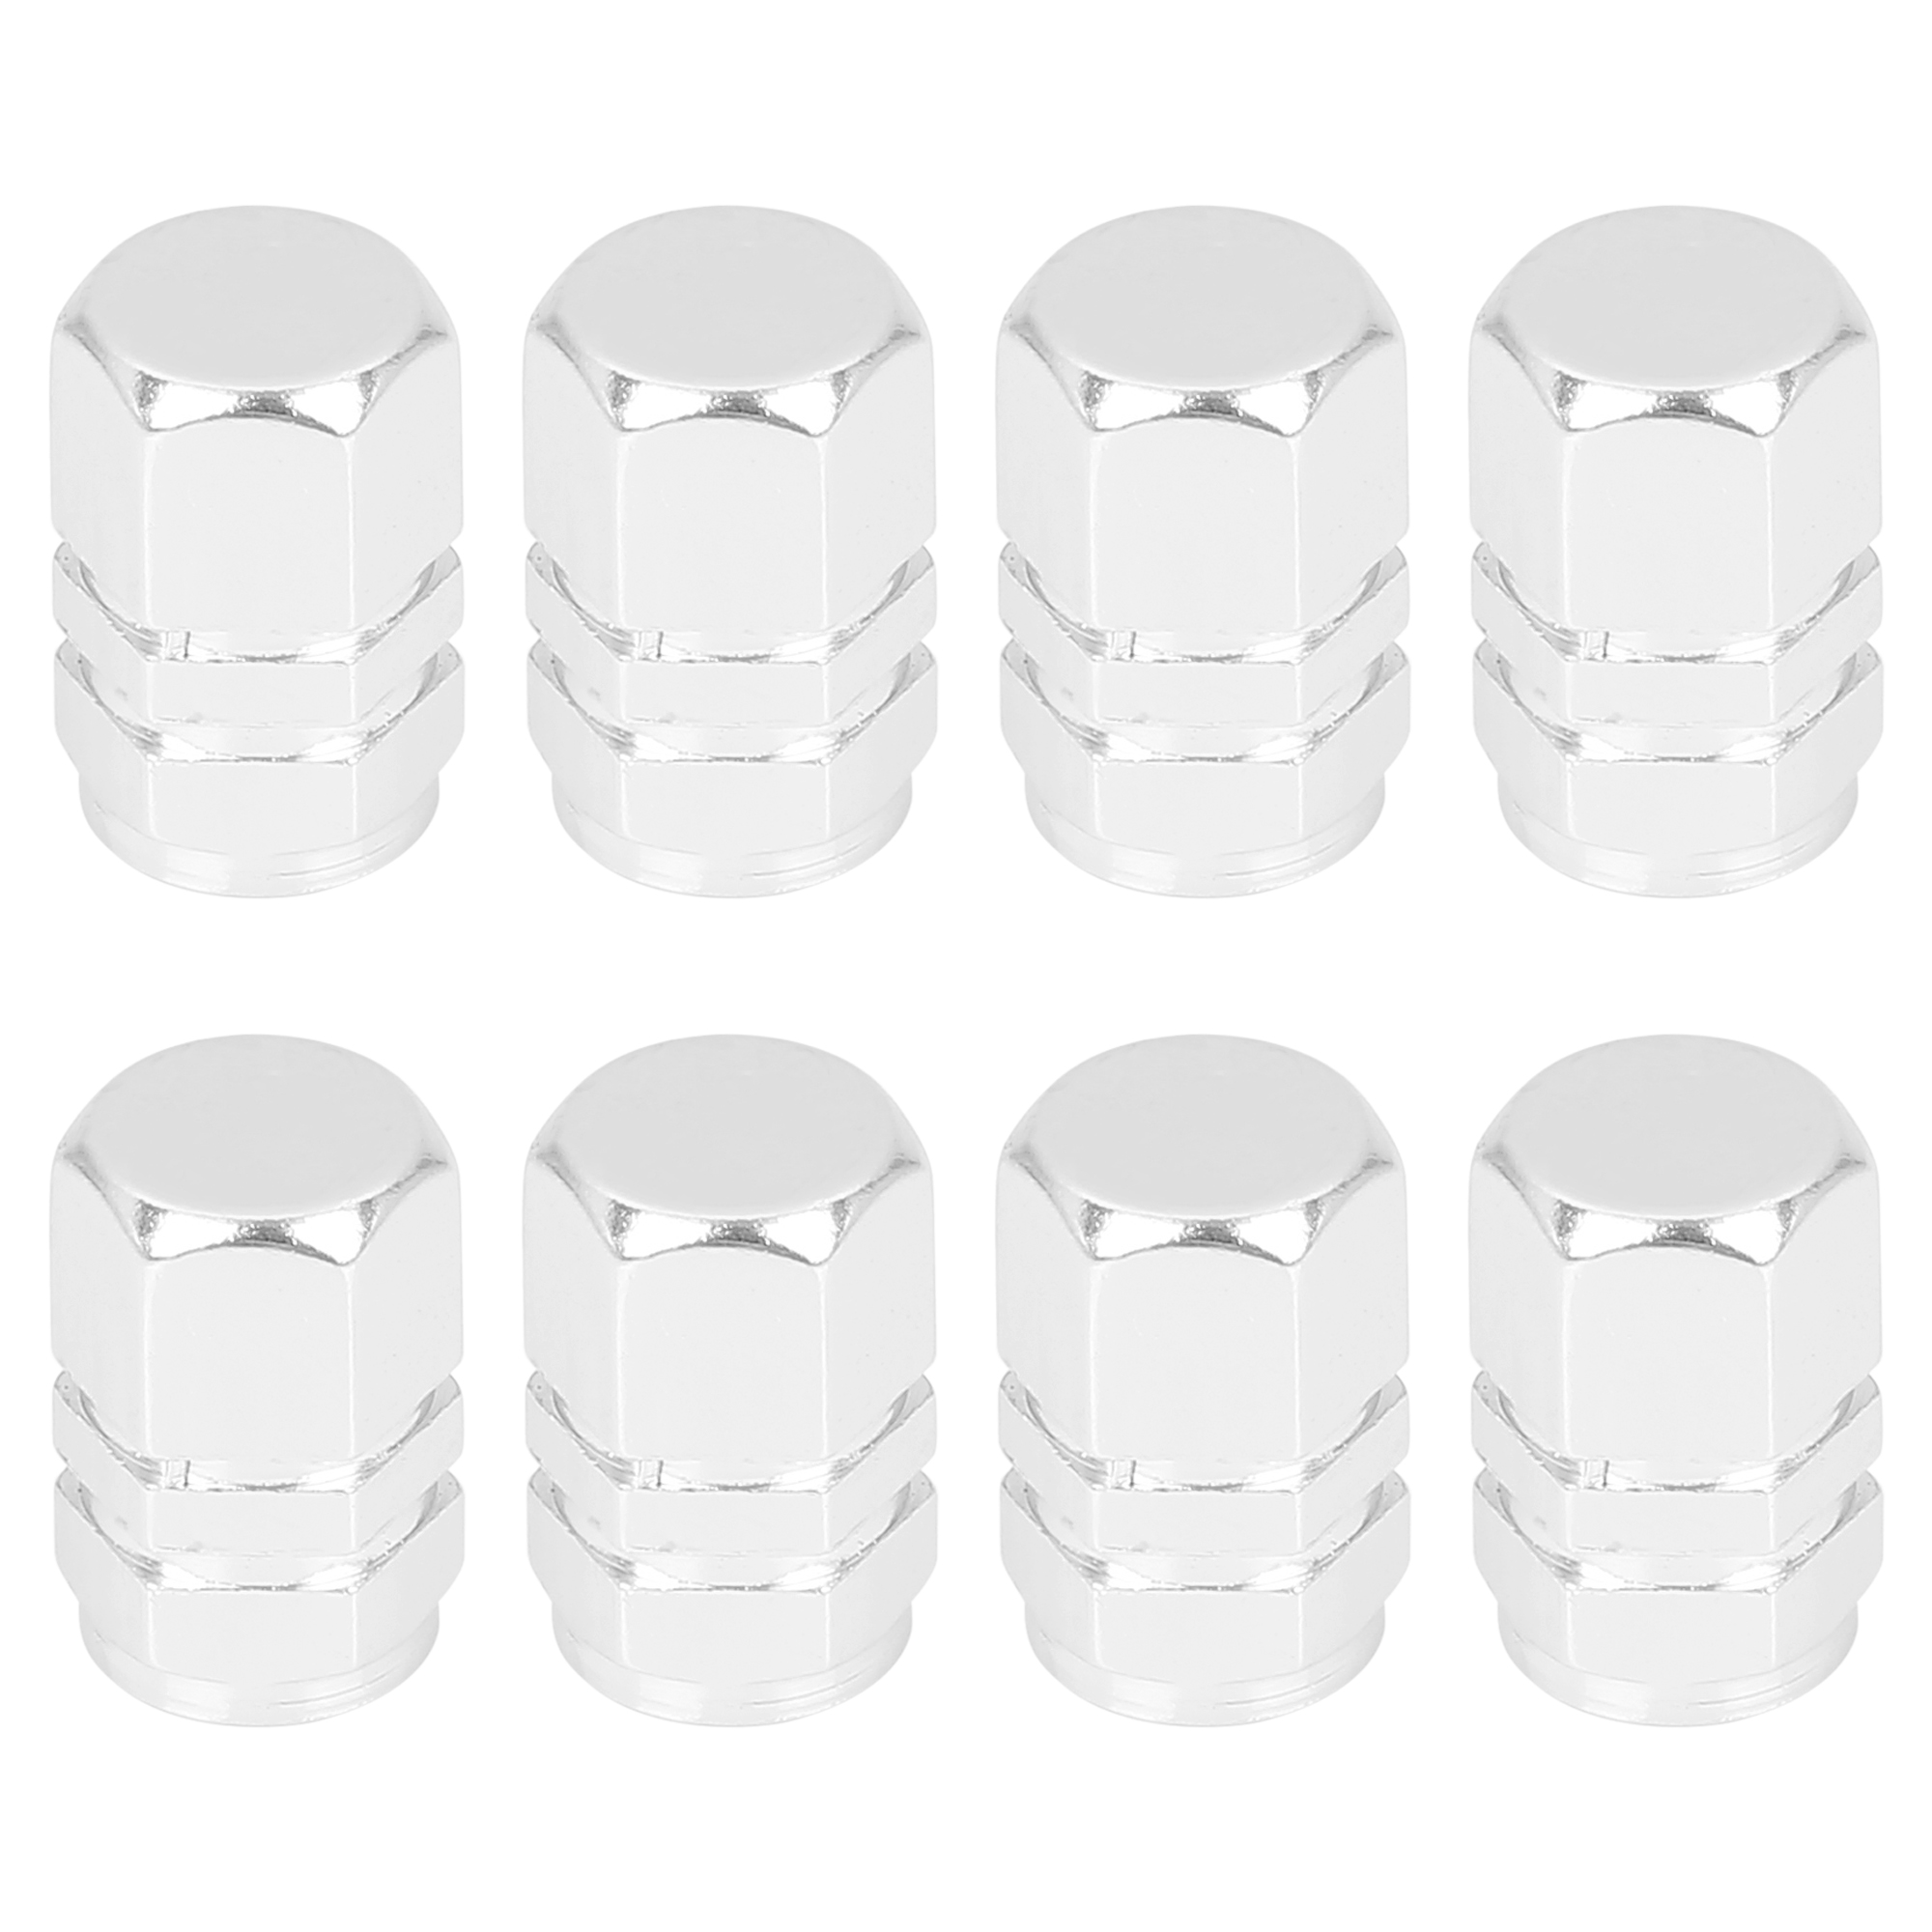 8pcs Silver Tone Tire Stem Valve Caps Car Hexagon Shape Aluminium Alloy Tire Cap